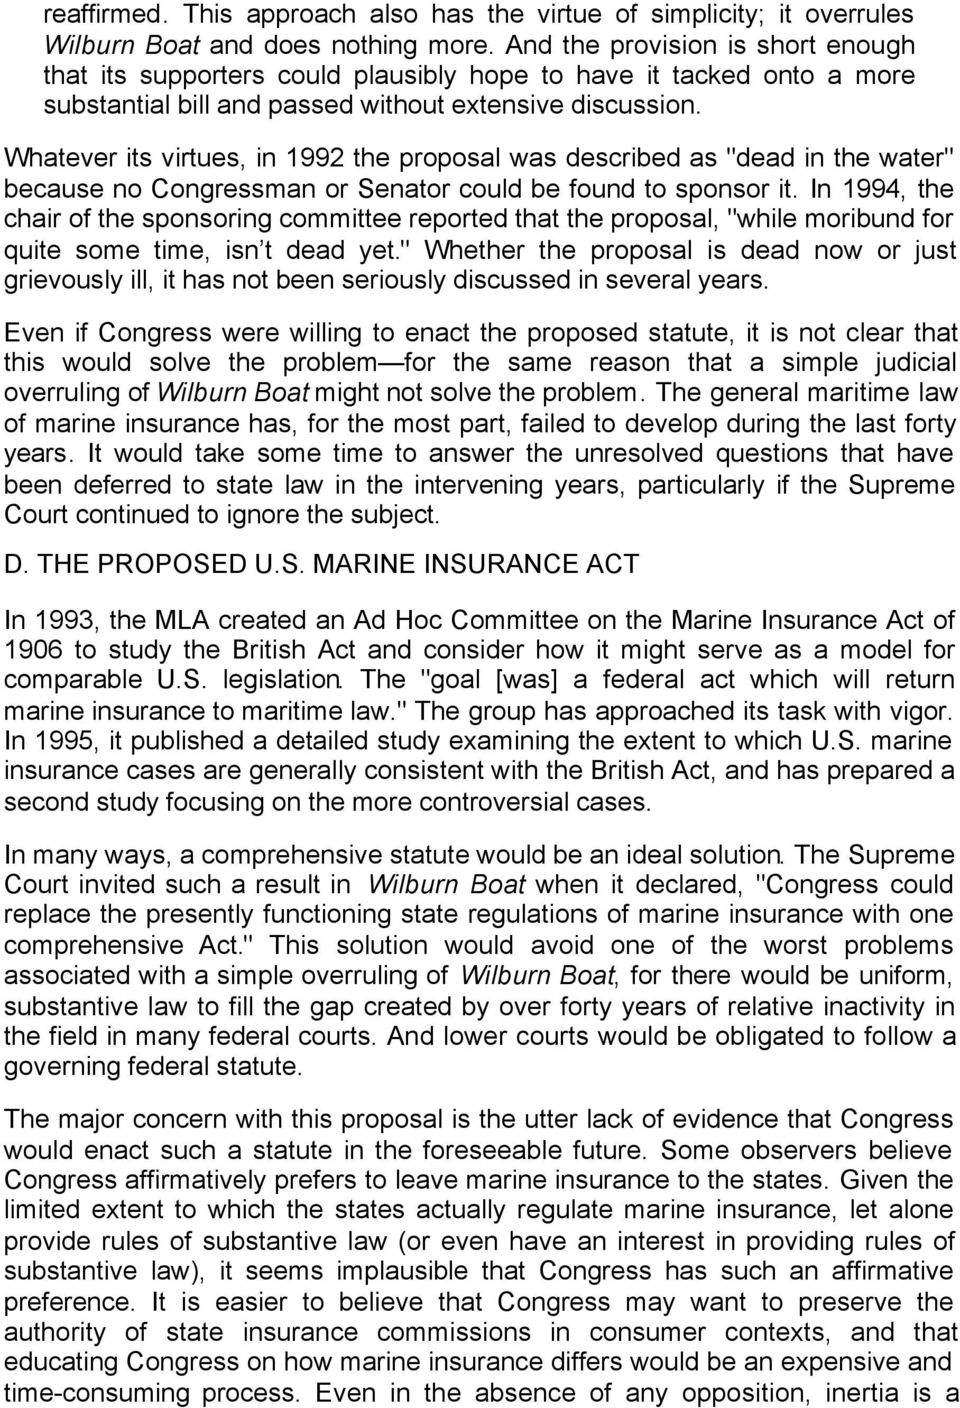 "Whatever its virtues, in 1992 the proposal was described as ""dead in the water"" because no Congressman or Senator could be found to sponsor it."